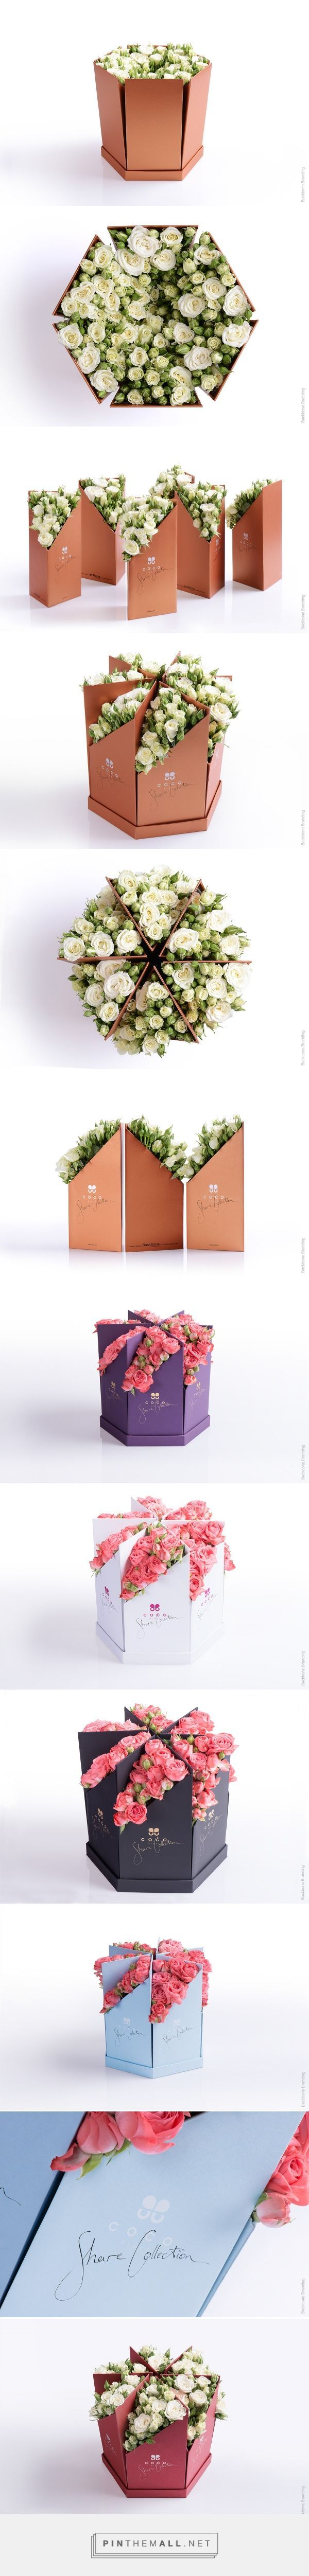 """Calligraphy, graphic design and packaging for Coco Fiori """"Share Collection"""" on…"""